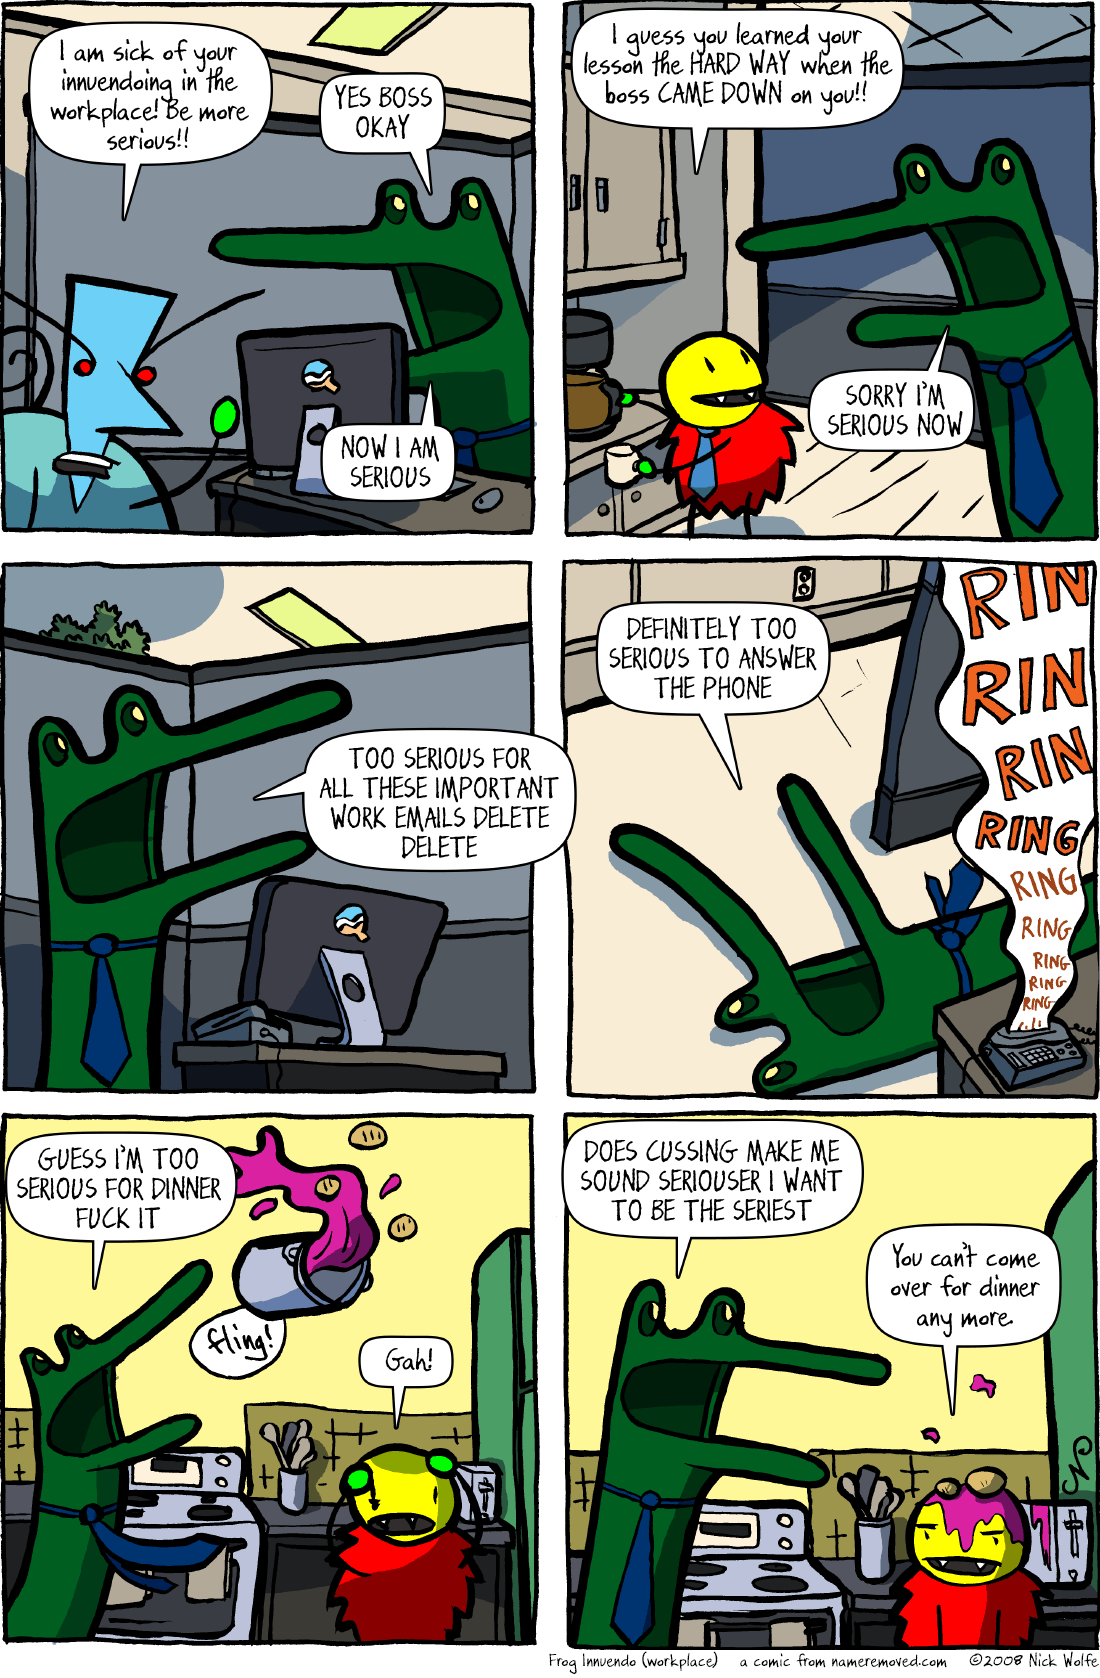 Frog Innuendo (workplace)